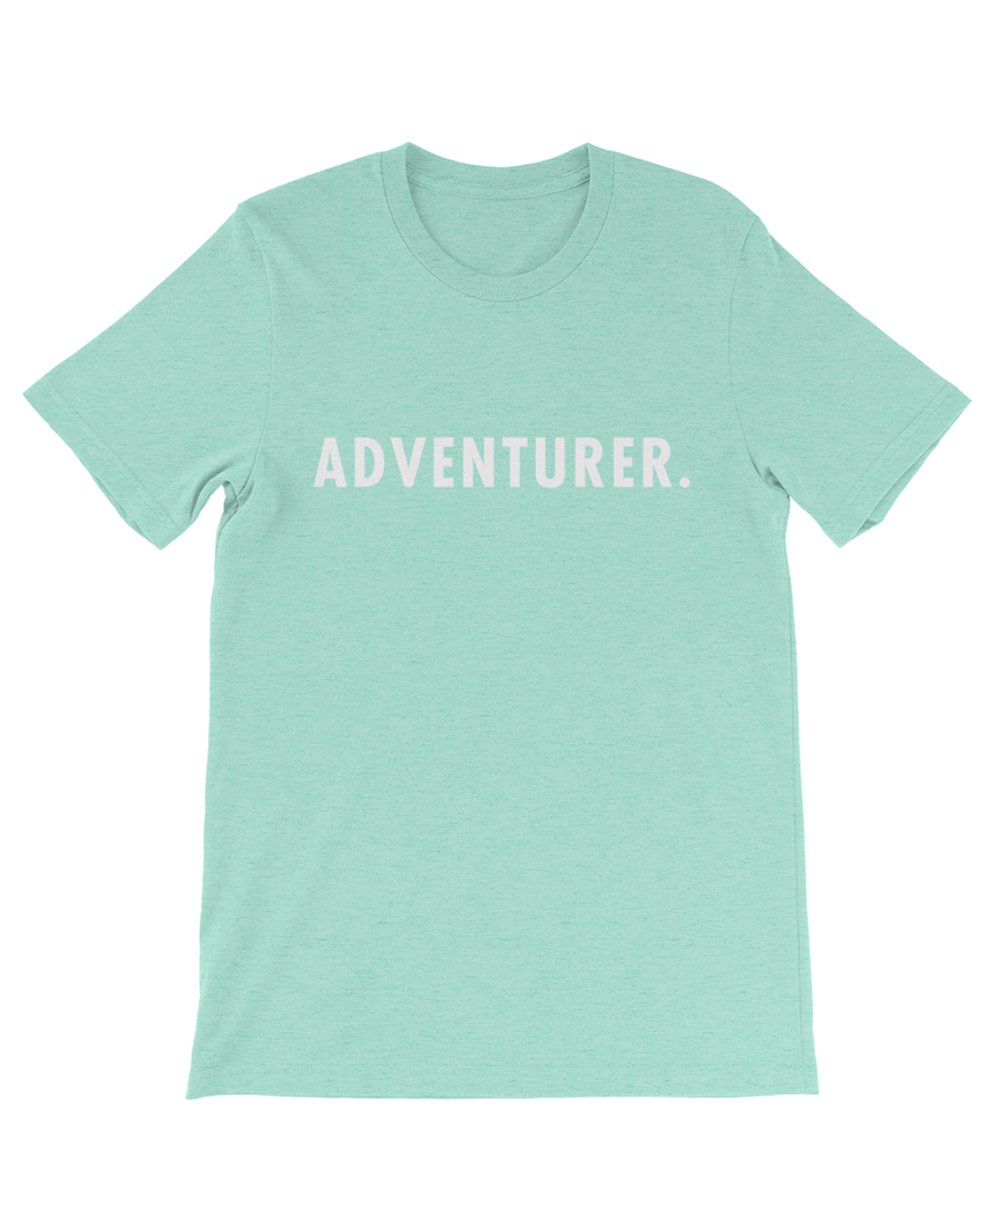 Boho adventurer tee mint green the wanderful soul